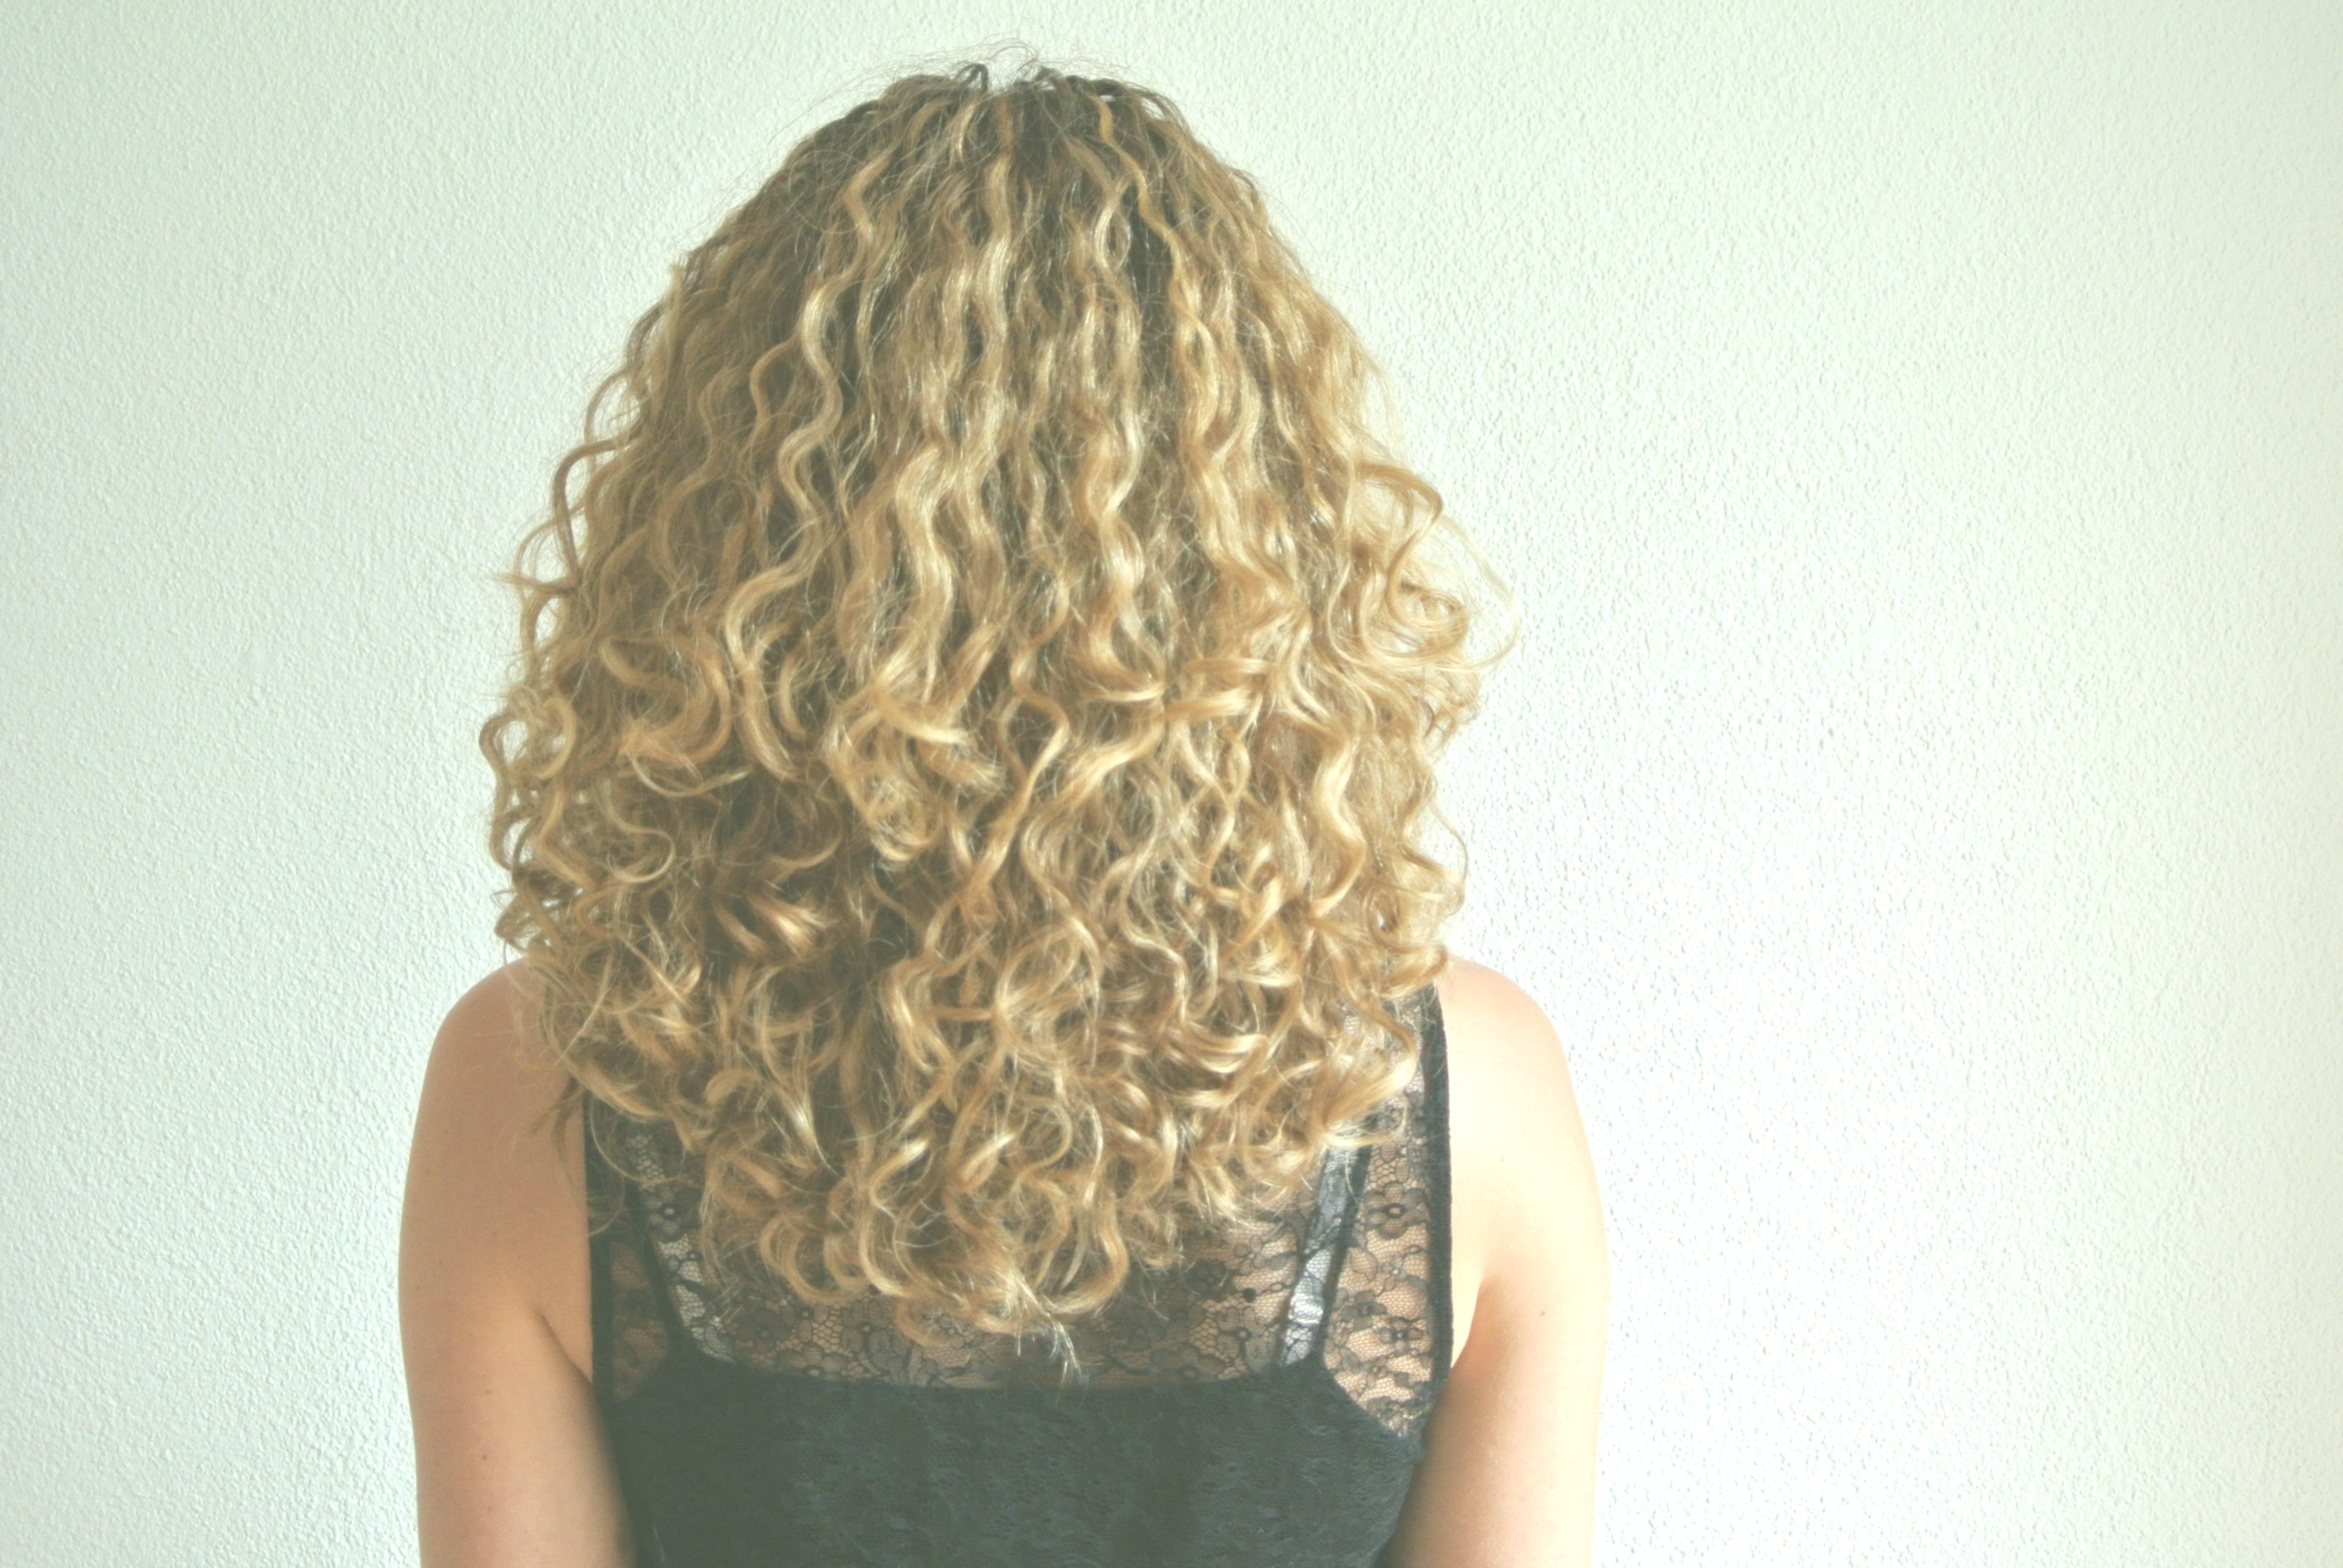 finest hairstyles long hair curls architecture-Superb hairstyles Long hair curls image